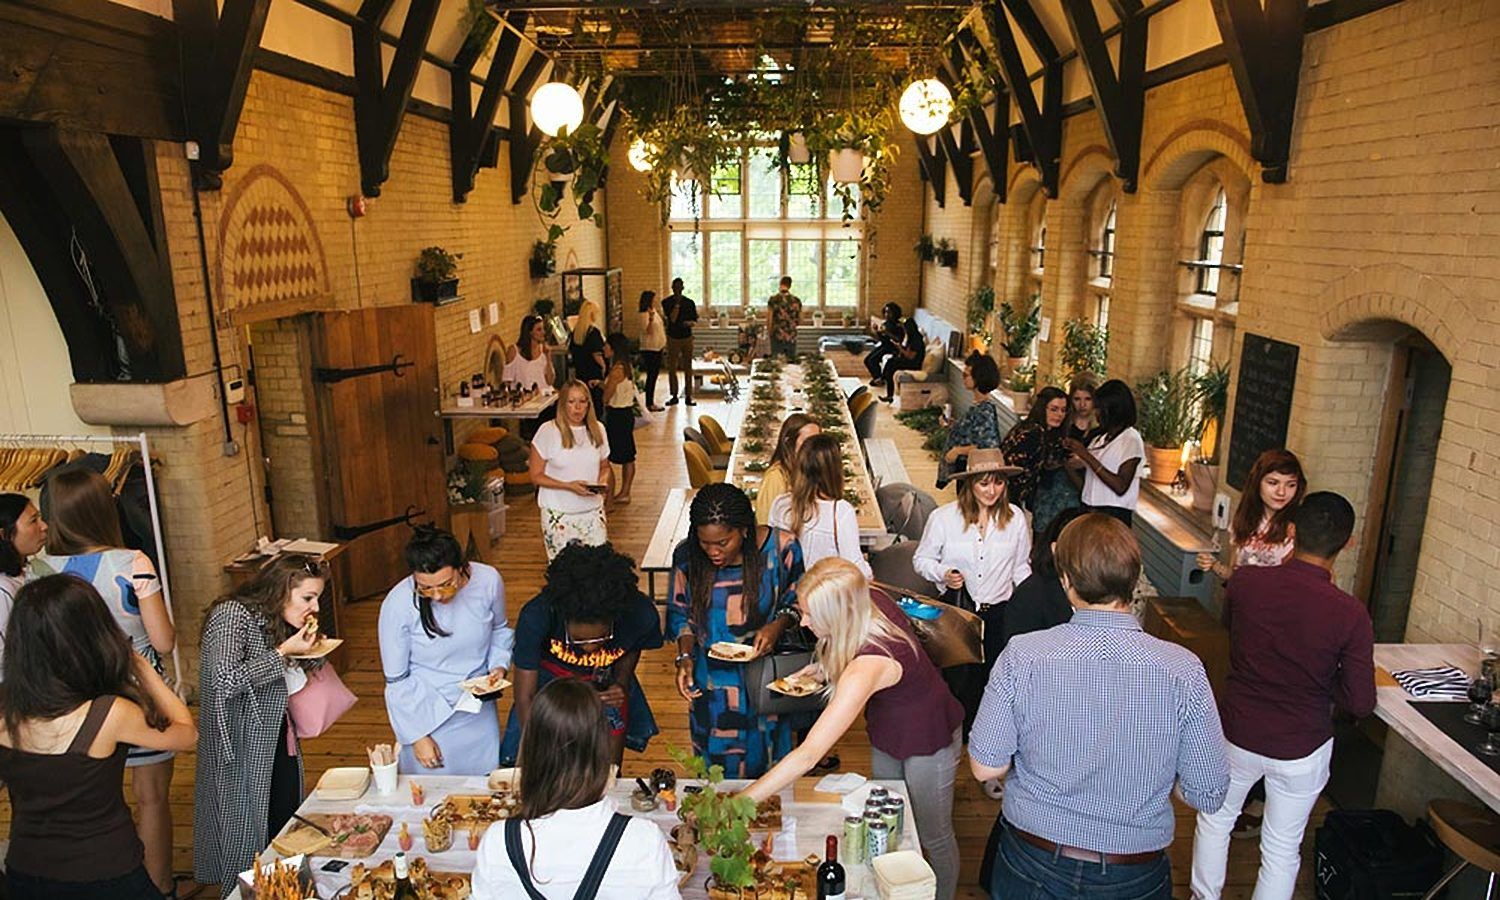 Social entreprise Elysia Catering serves breakfasts and aperitifs at London events using food surplus from artisan producers.